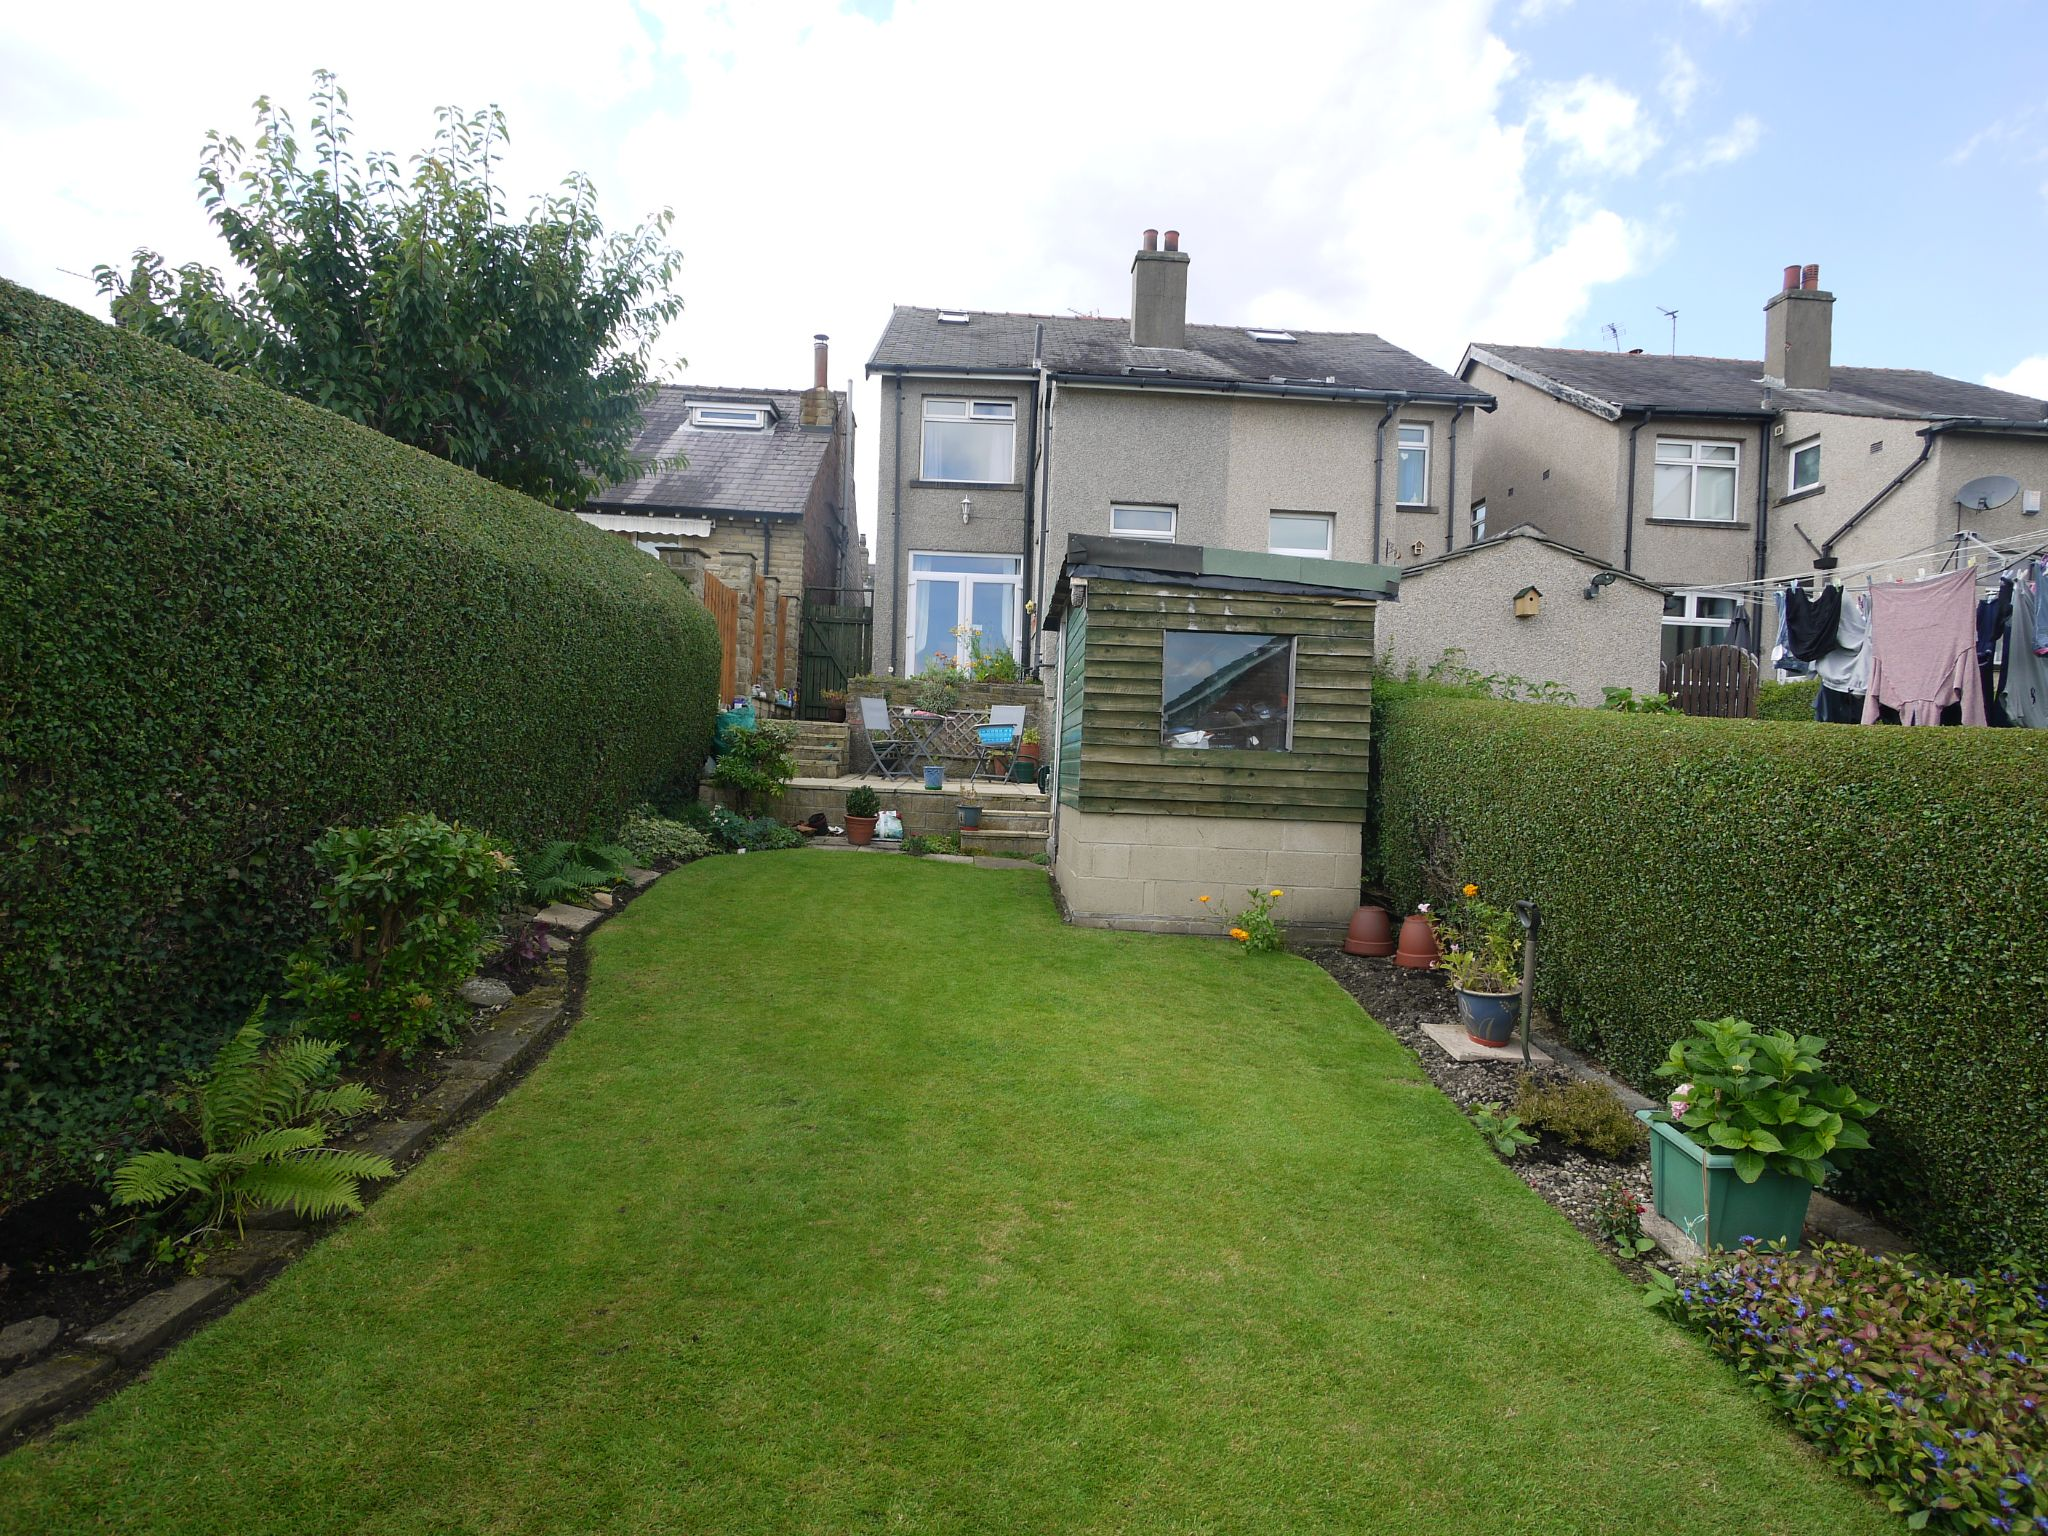 3 bedroom semi-detached house SSTC in Calderdale - Photograph 13.